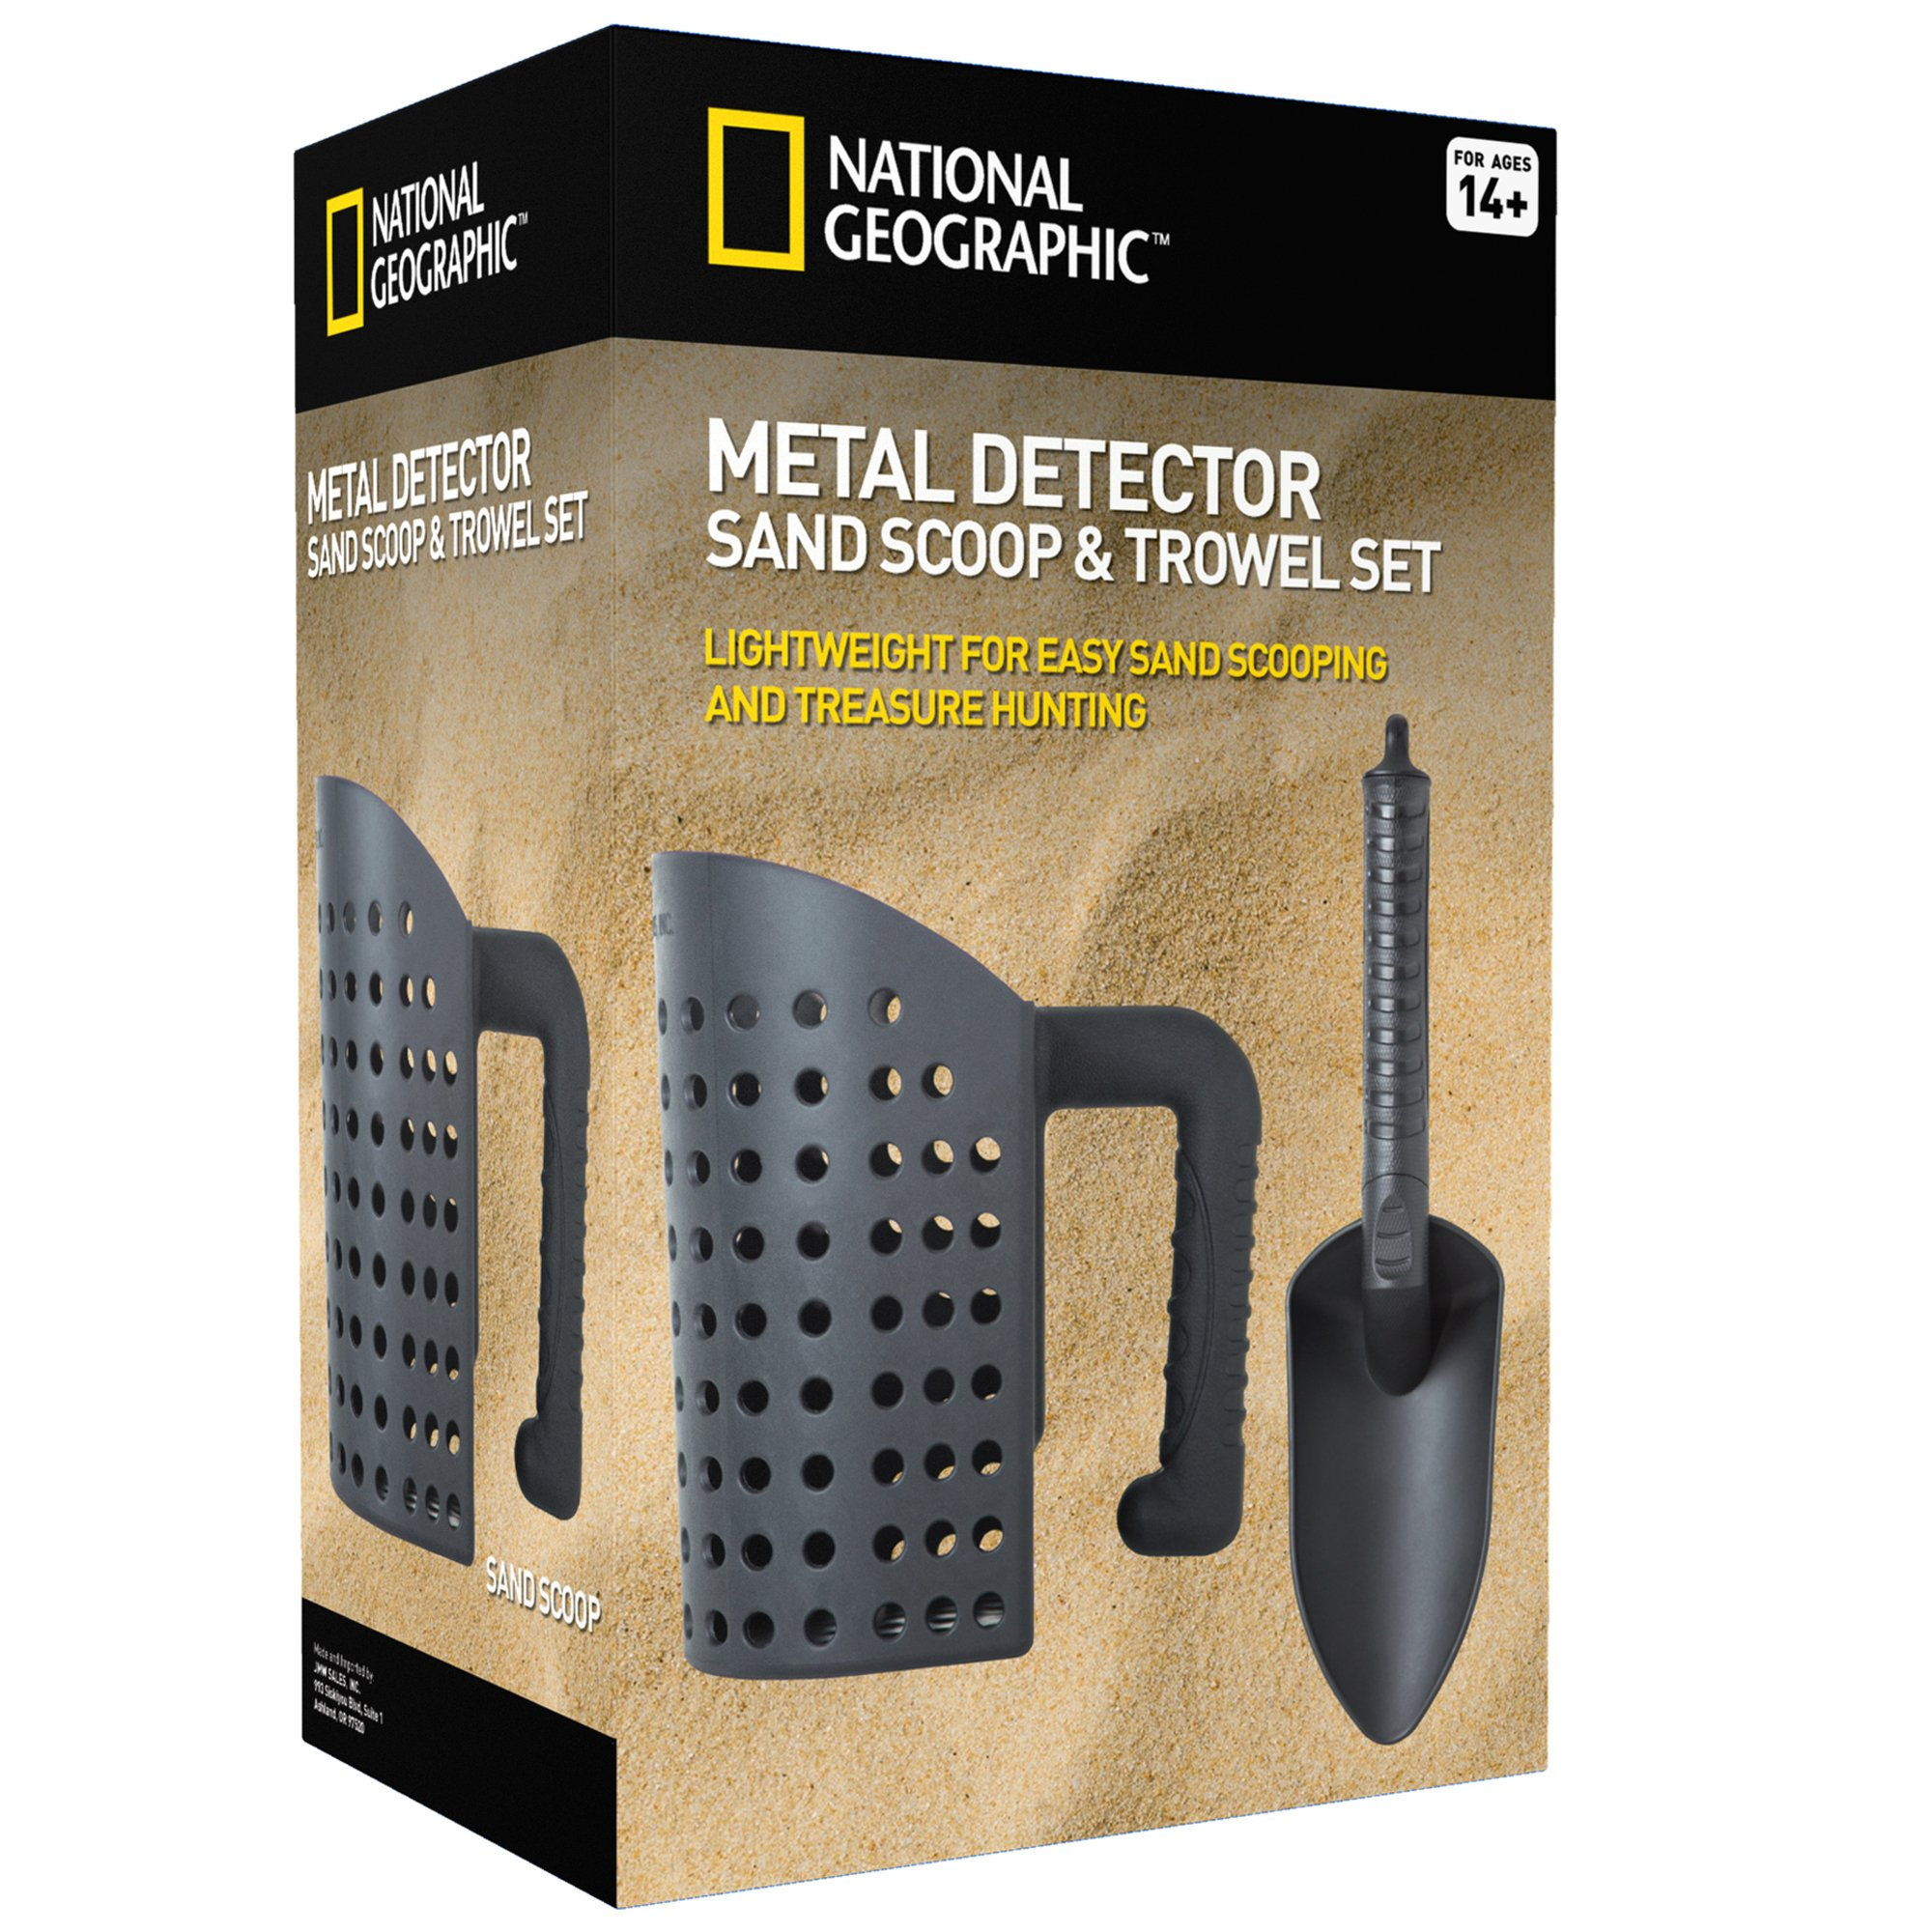 NATIONAL GEOGRAPHIC Sand Scoop and Shovel Accessories for Metal Detecting and Treasure Hunting